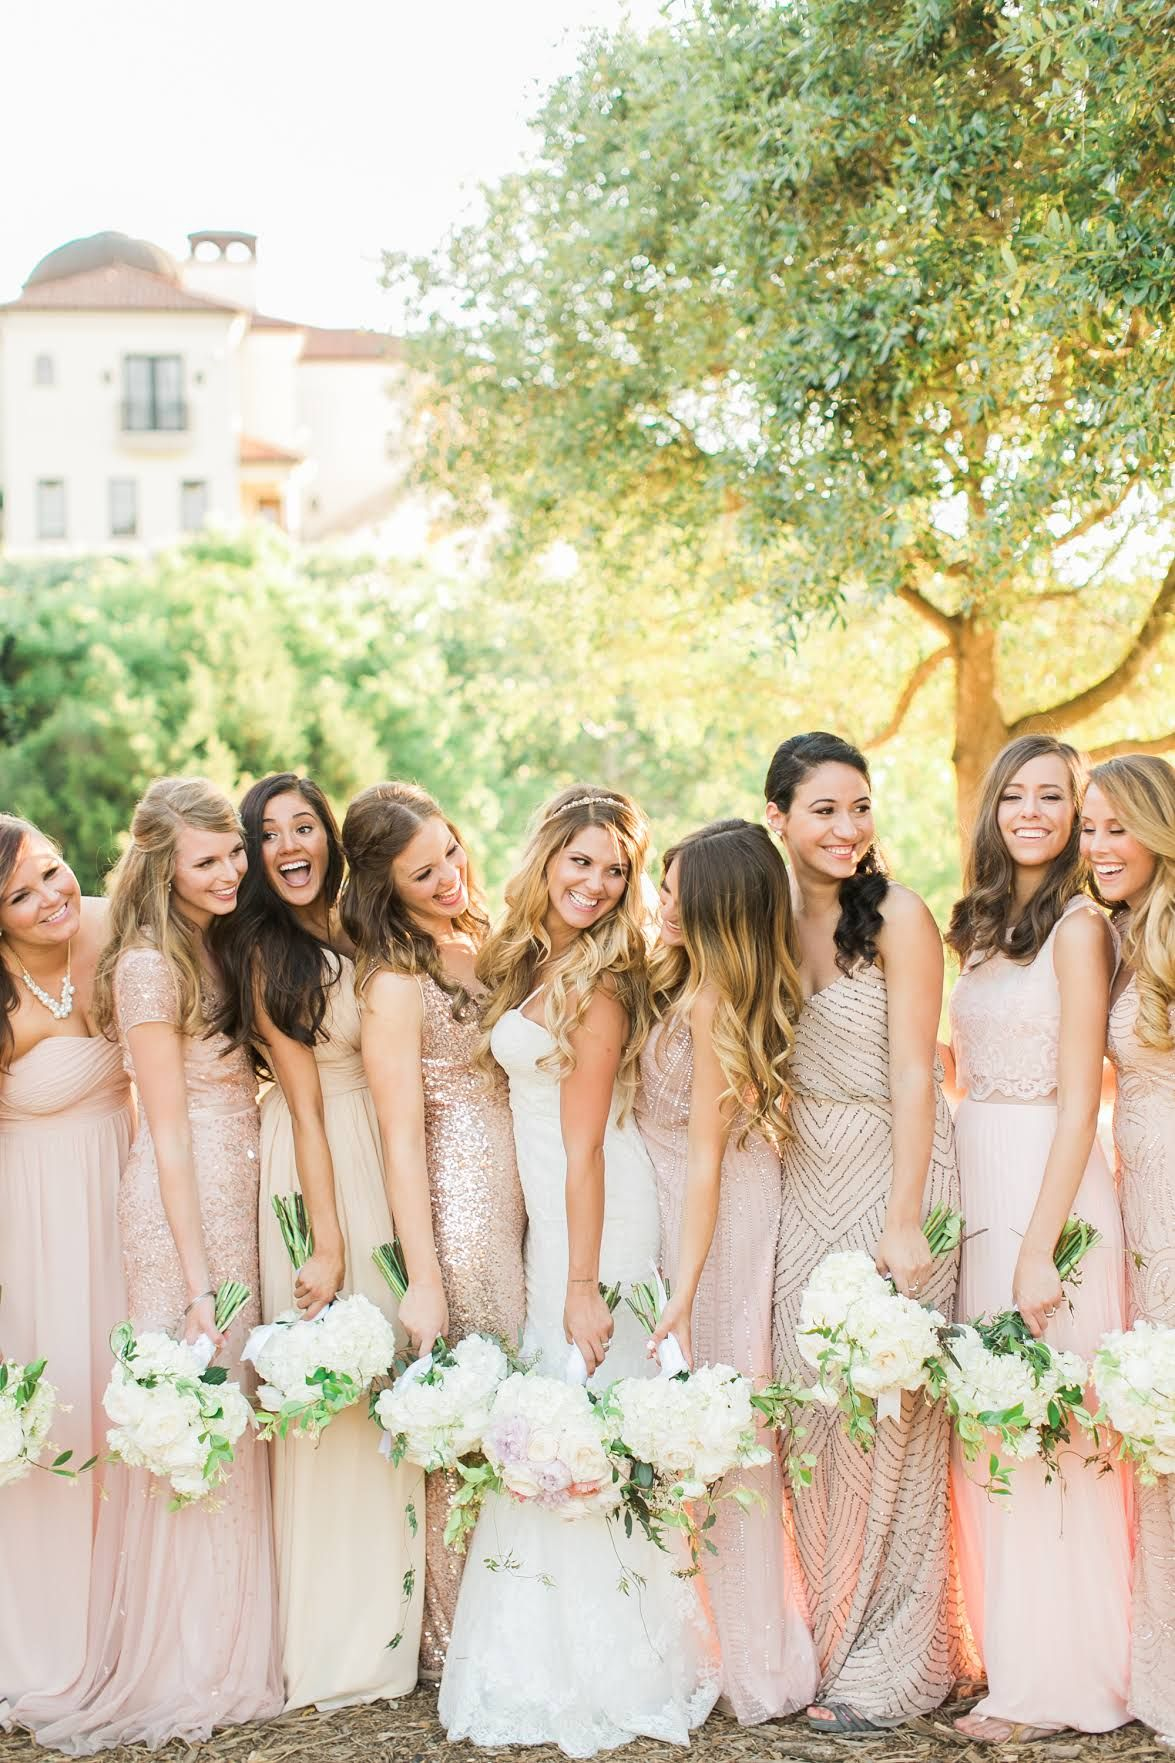 Mismatched Bridesmaid Dresses Blush And Champagne Blush And